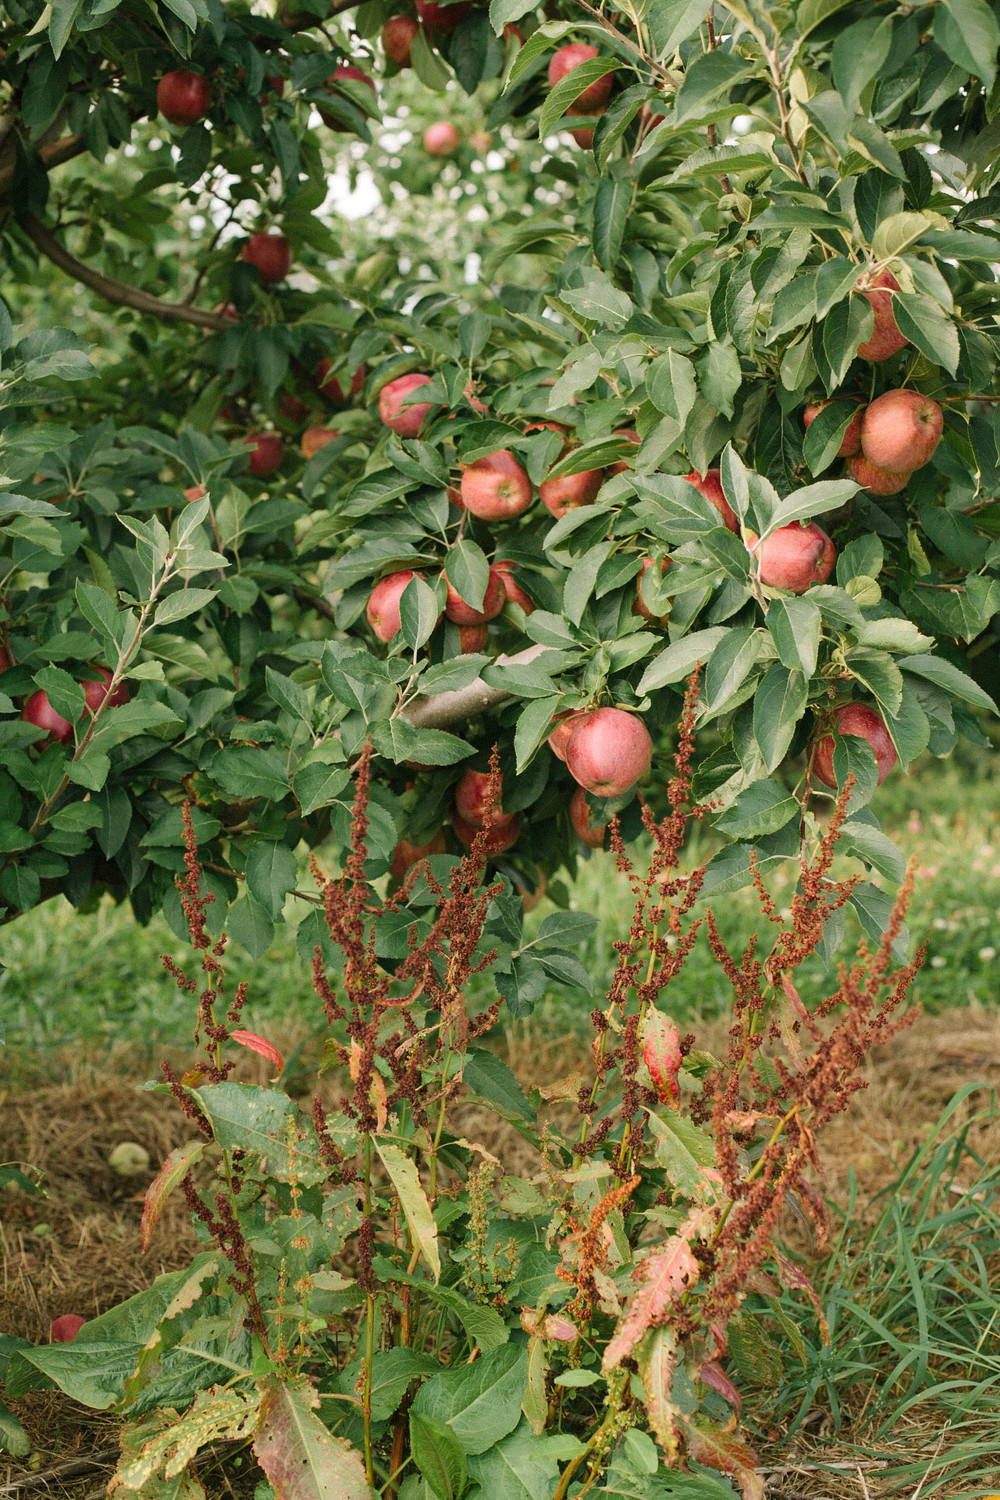 Apples are best picked in the Fall - September is just around the corner.